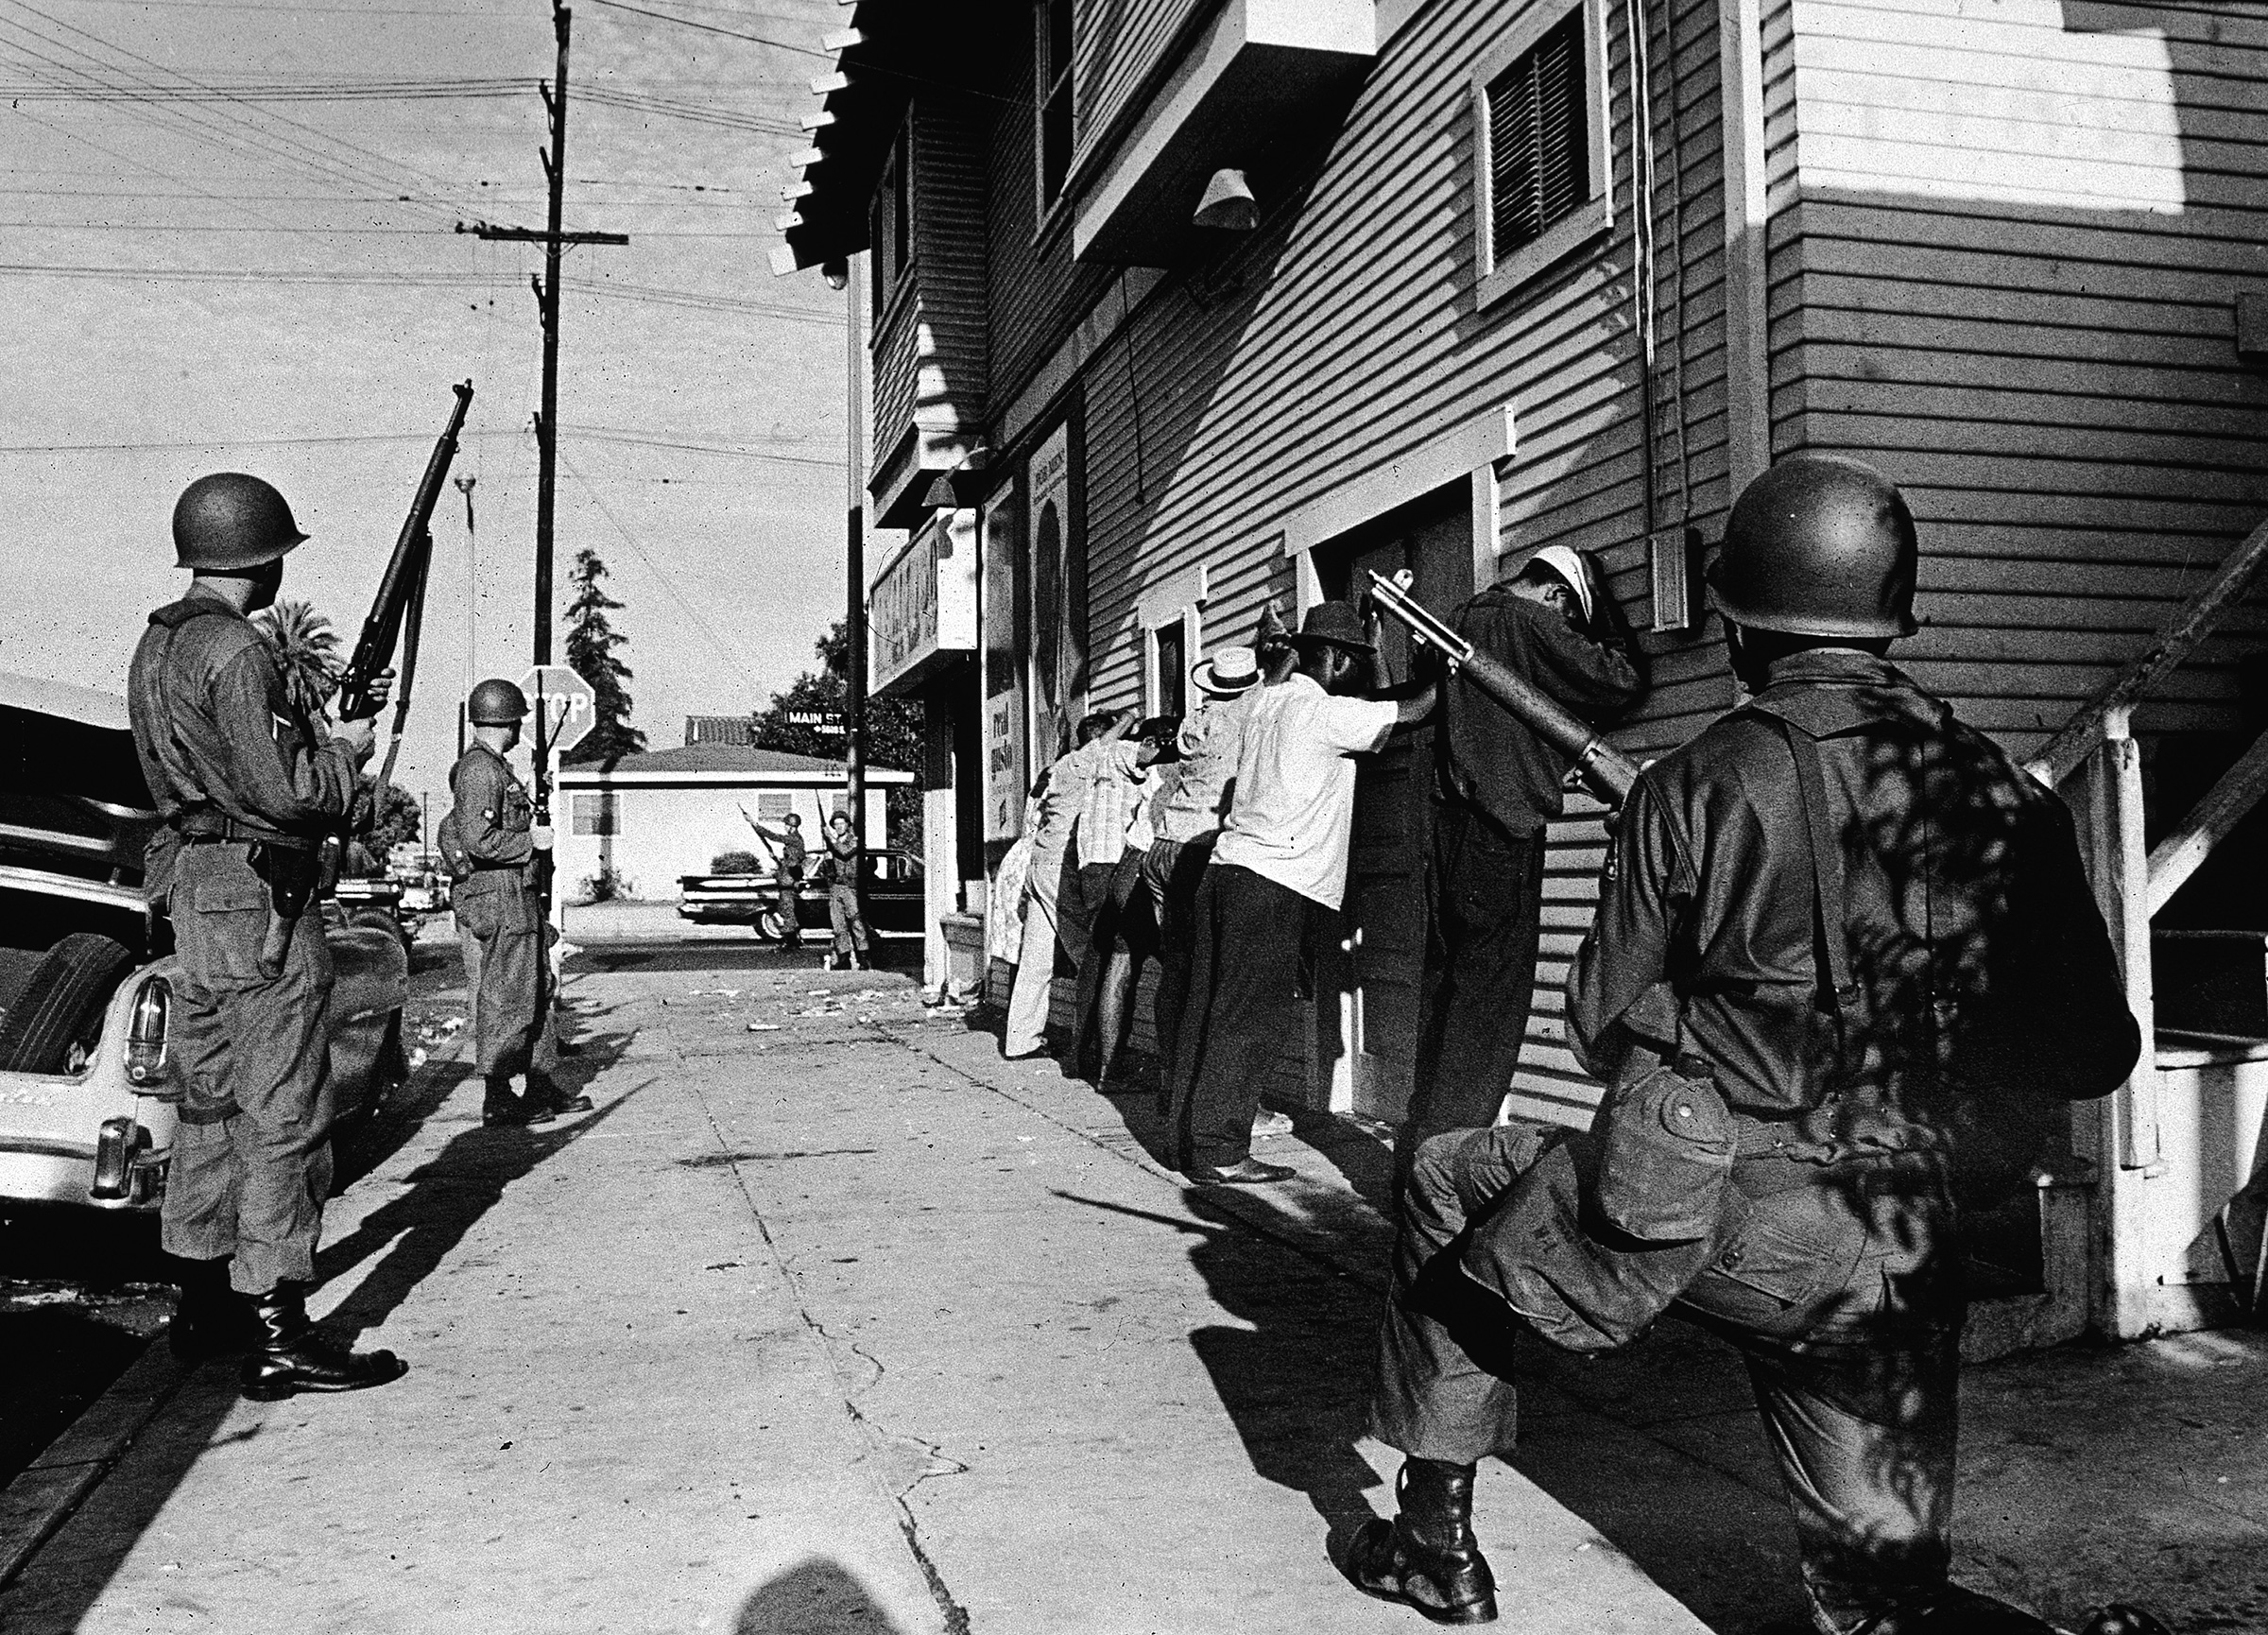 Armed National Guardsmen force a line of Black men to stand against the wall of a building during the Watts riots in 1965